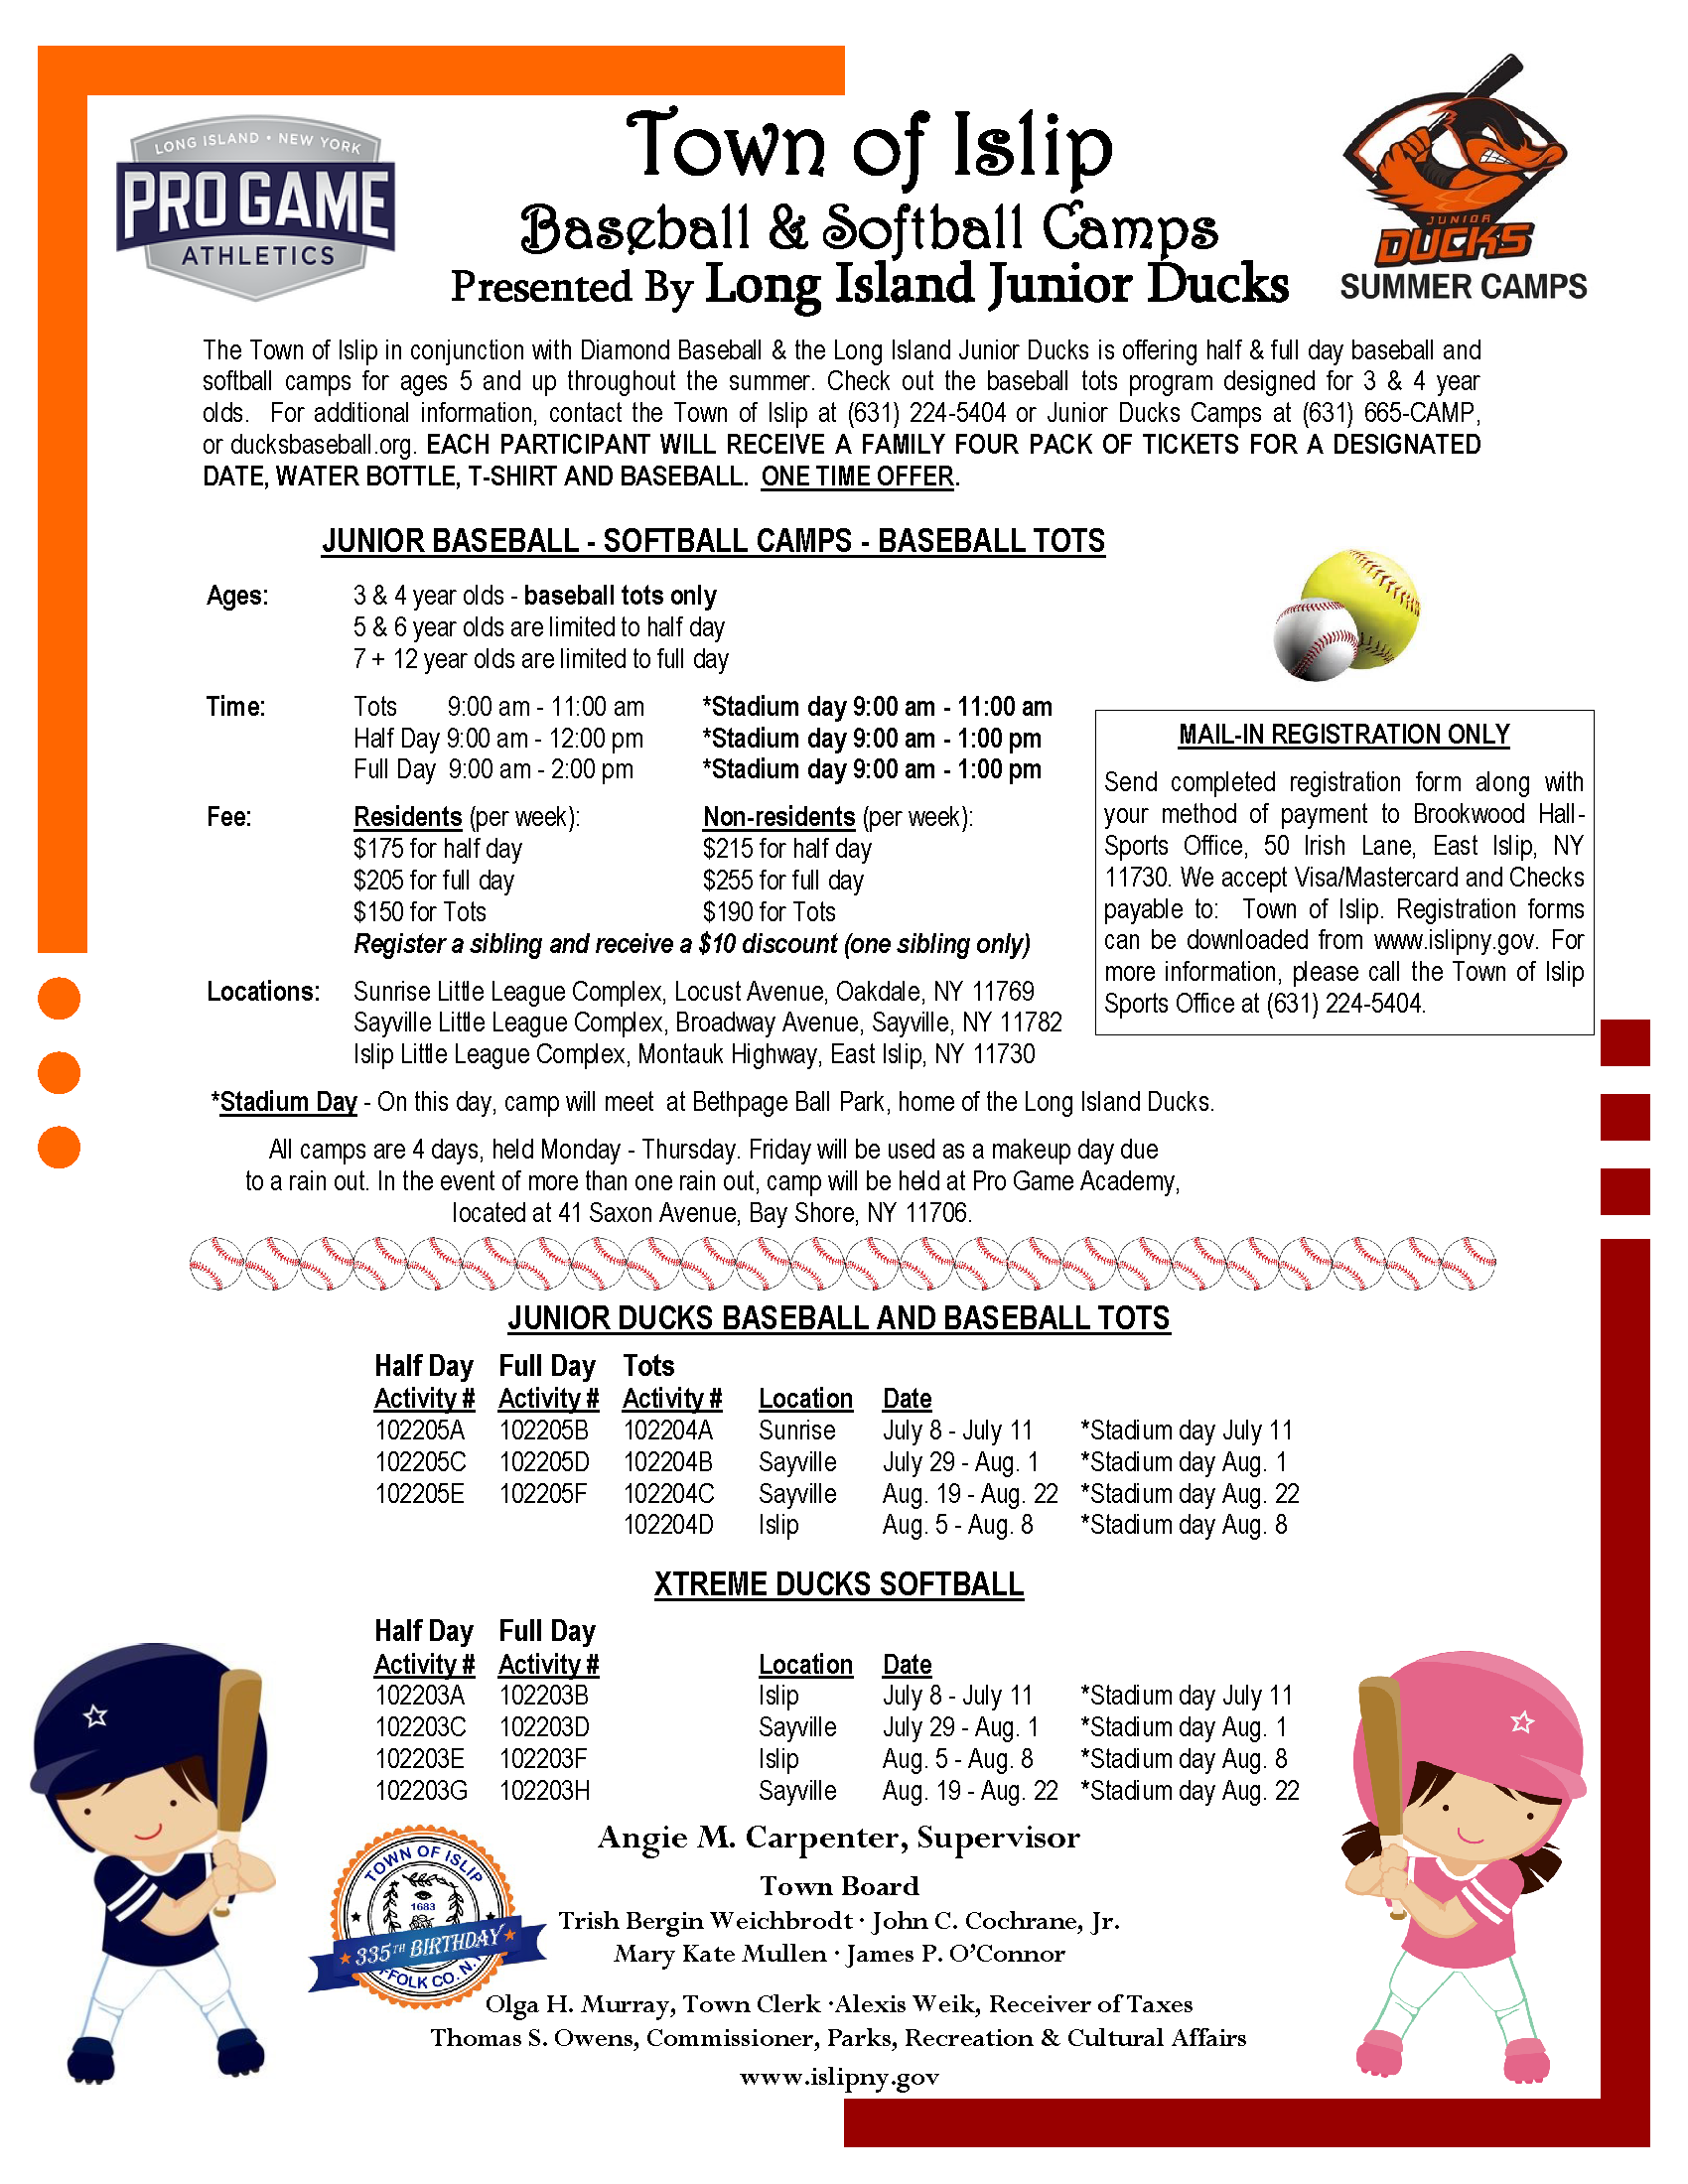 a flyer announcing the 2019 baseball camp, call (631) 224-5404 for more information.